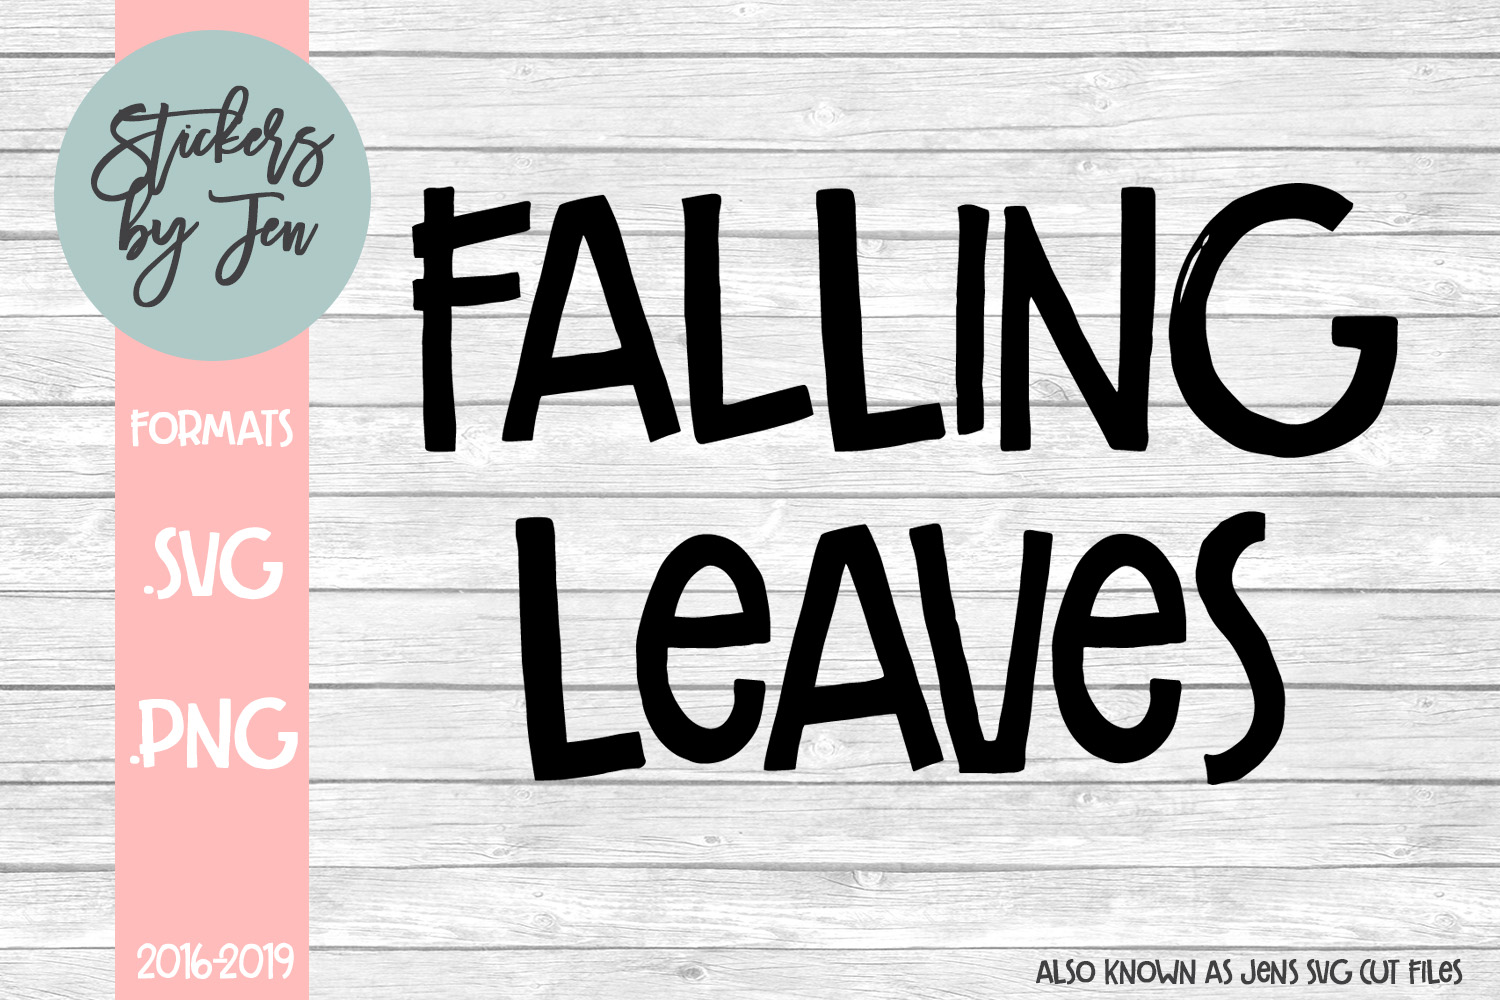 Download Free Falling Leaves Graphic By Stickers By Jennifer Creative Fabrica for Cricut Explore, Silhouette and other cutting machines.